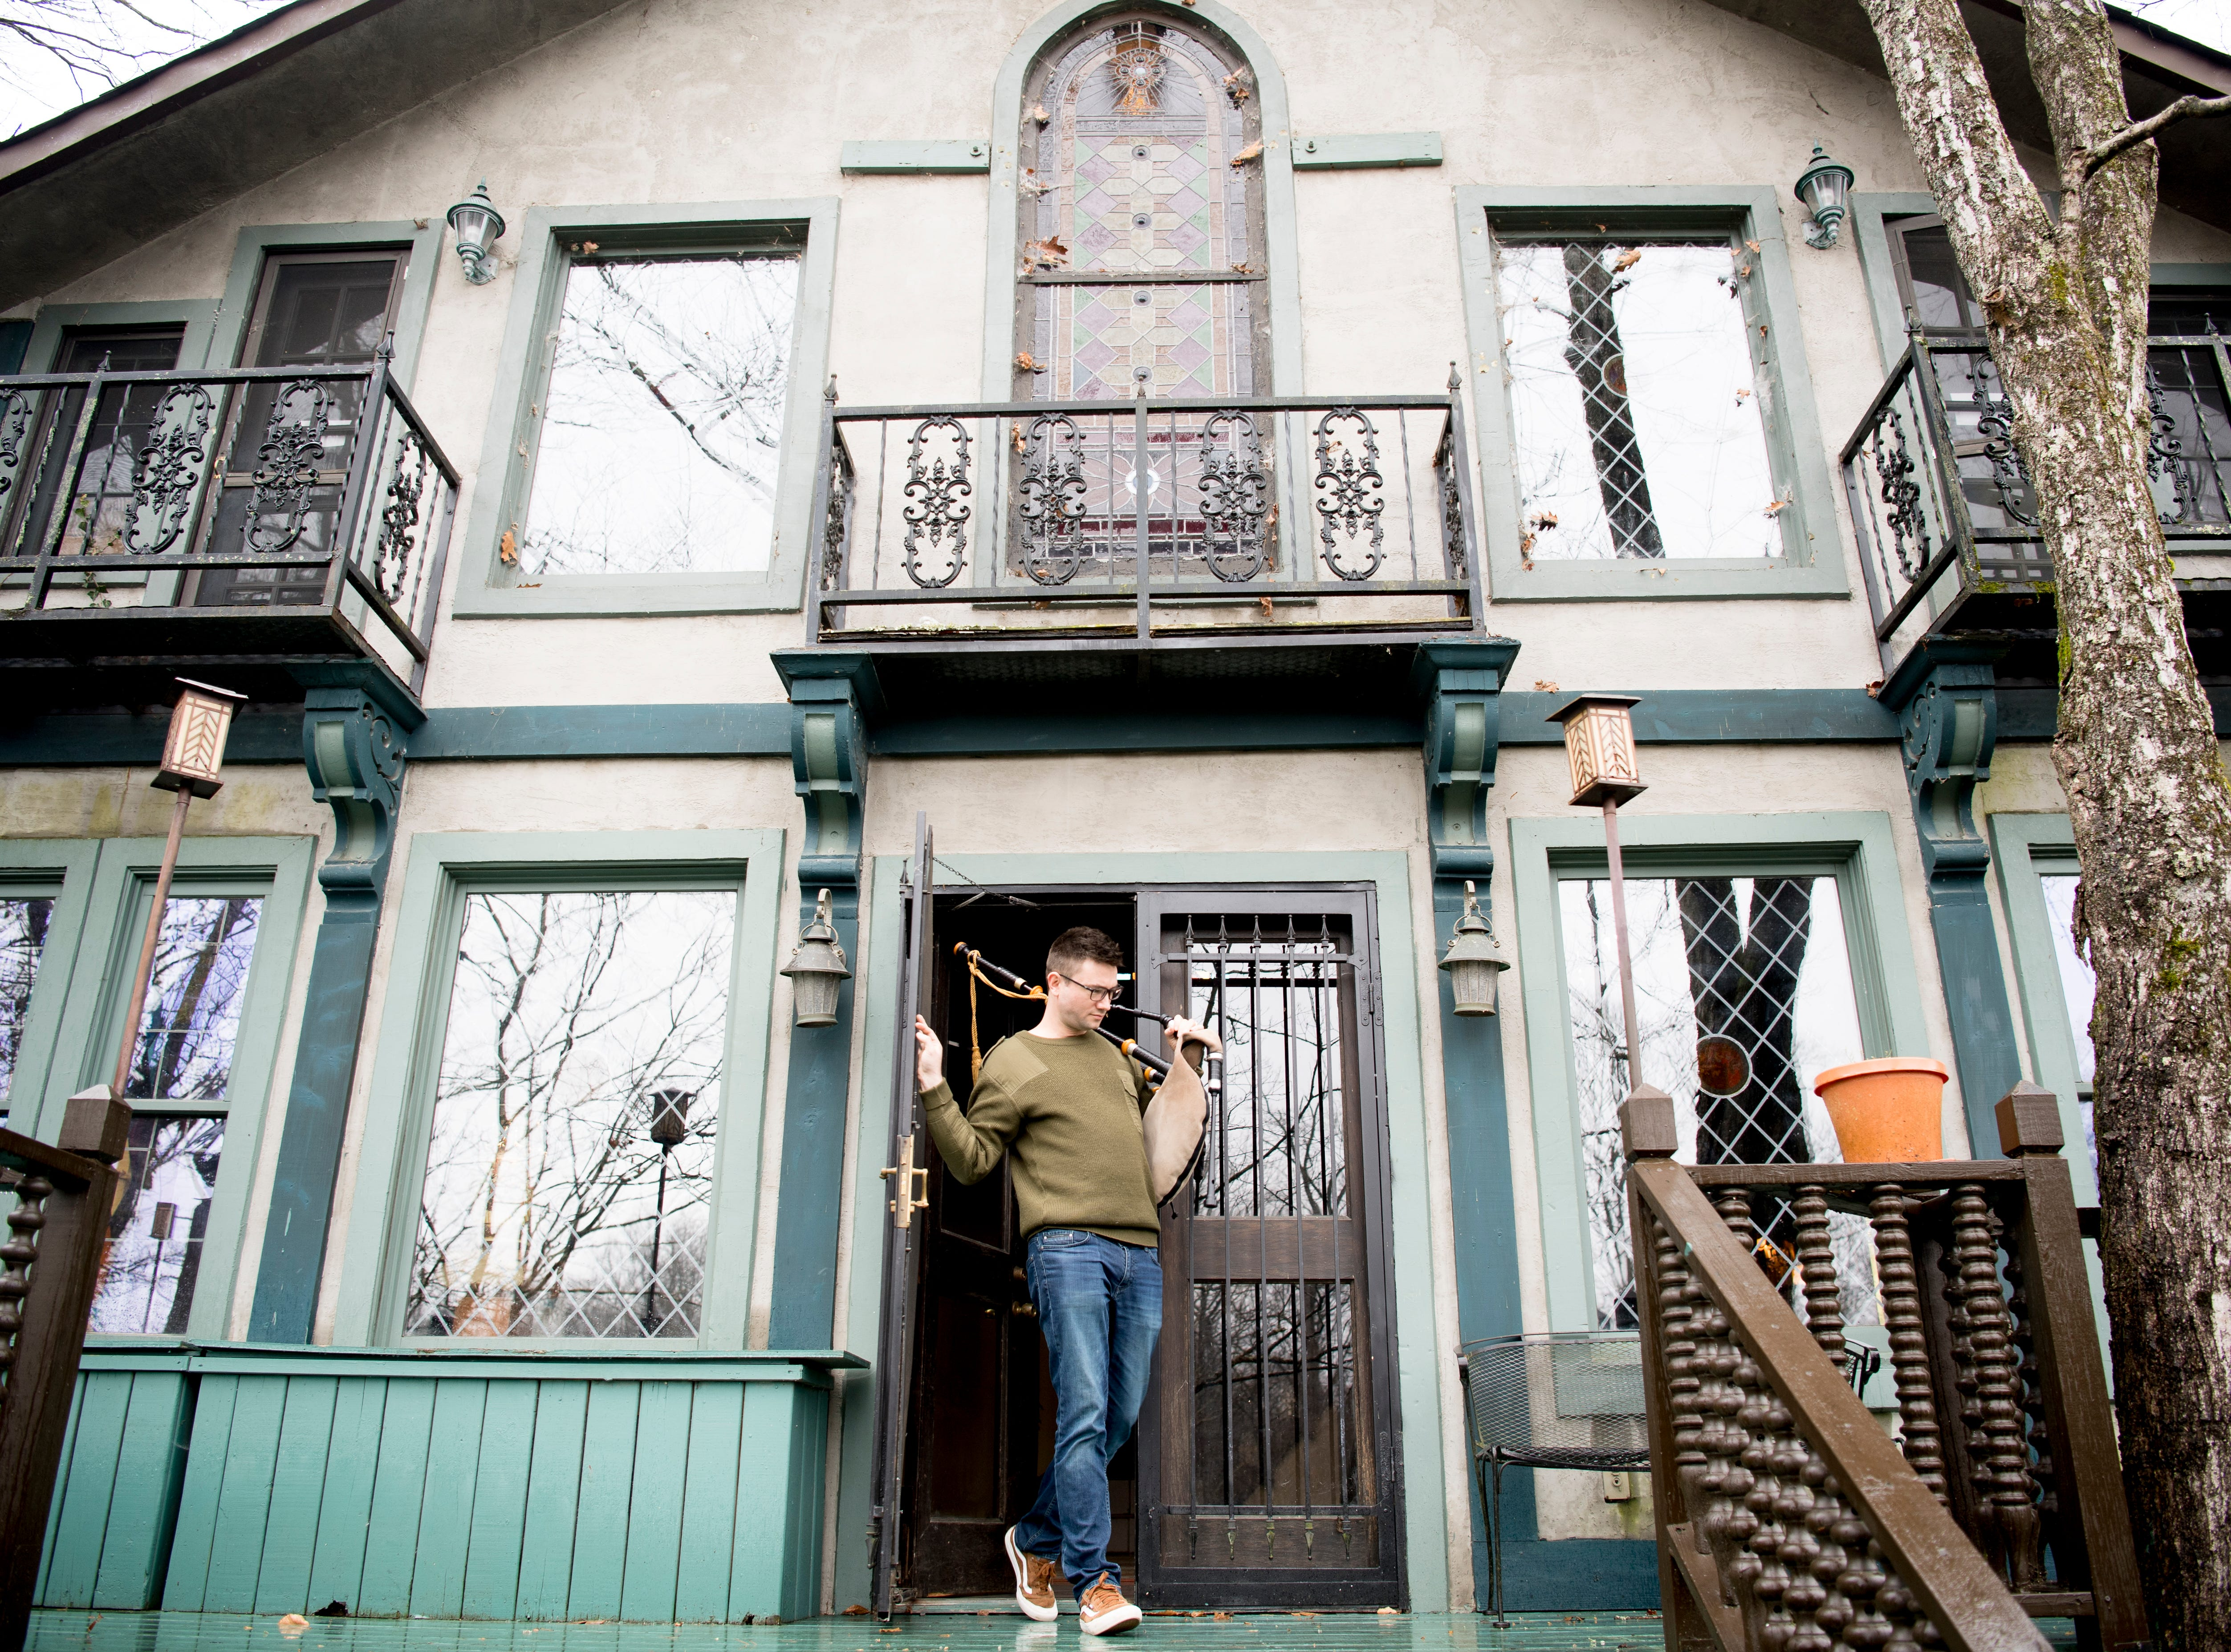 Tyler Roy walks out onto the back porch of Williamswood Castle in South Knoxville, Tennessee on Thursday, Jan. 17, 2019. The home, modeled after a medieval castle, was built by his grandmother Julia Tucker beginning in 1991 and took six years to complete. Many of the items in the home were sourced from around the Knoxville area. In 2019, the castle was listed on Airbnb.